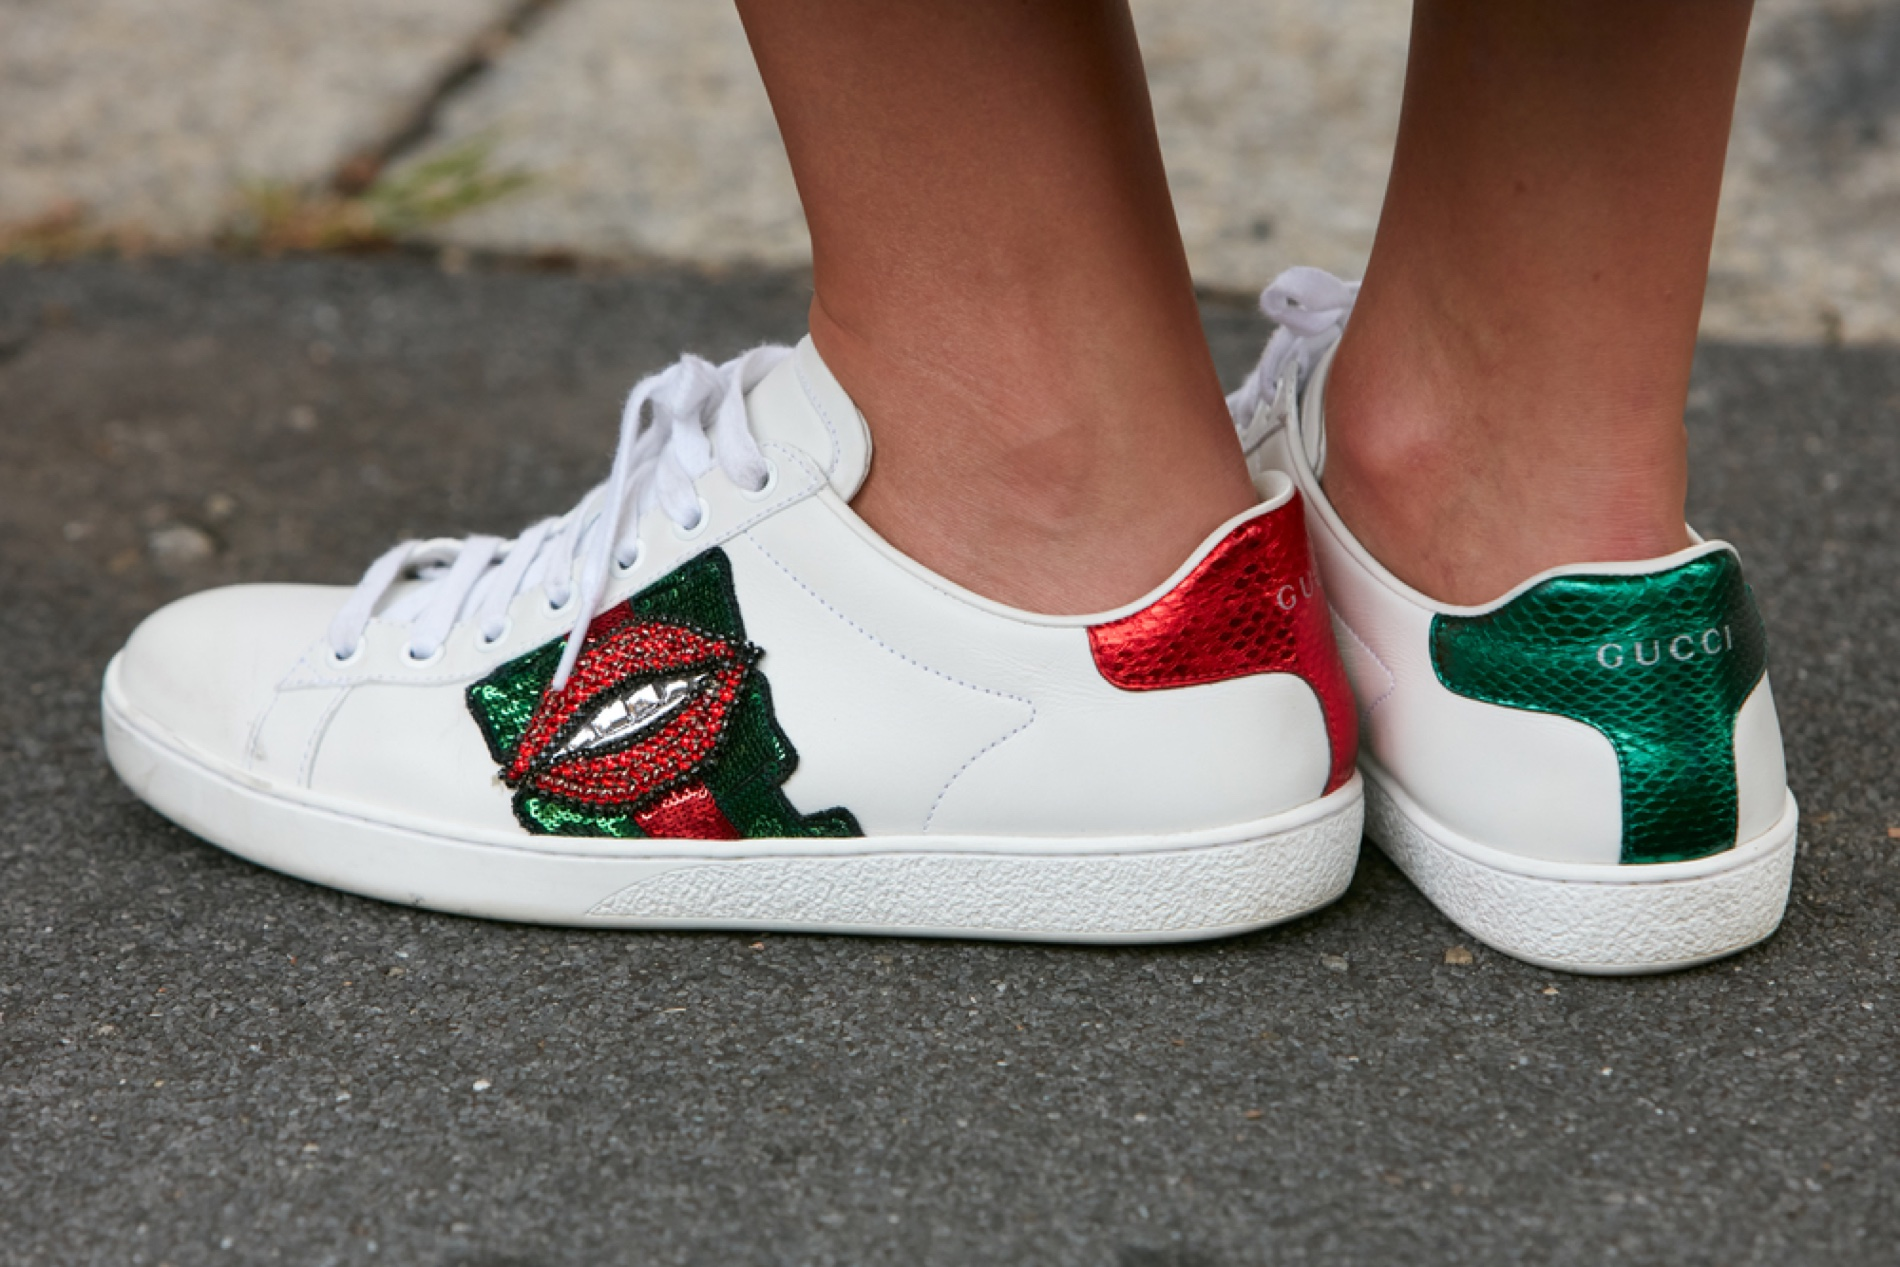 Gucci Embellished Sneakers Lips